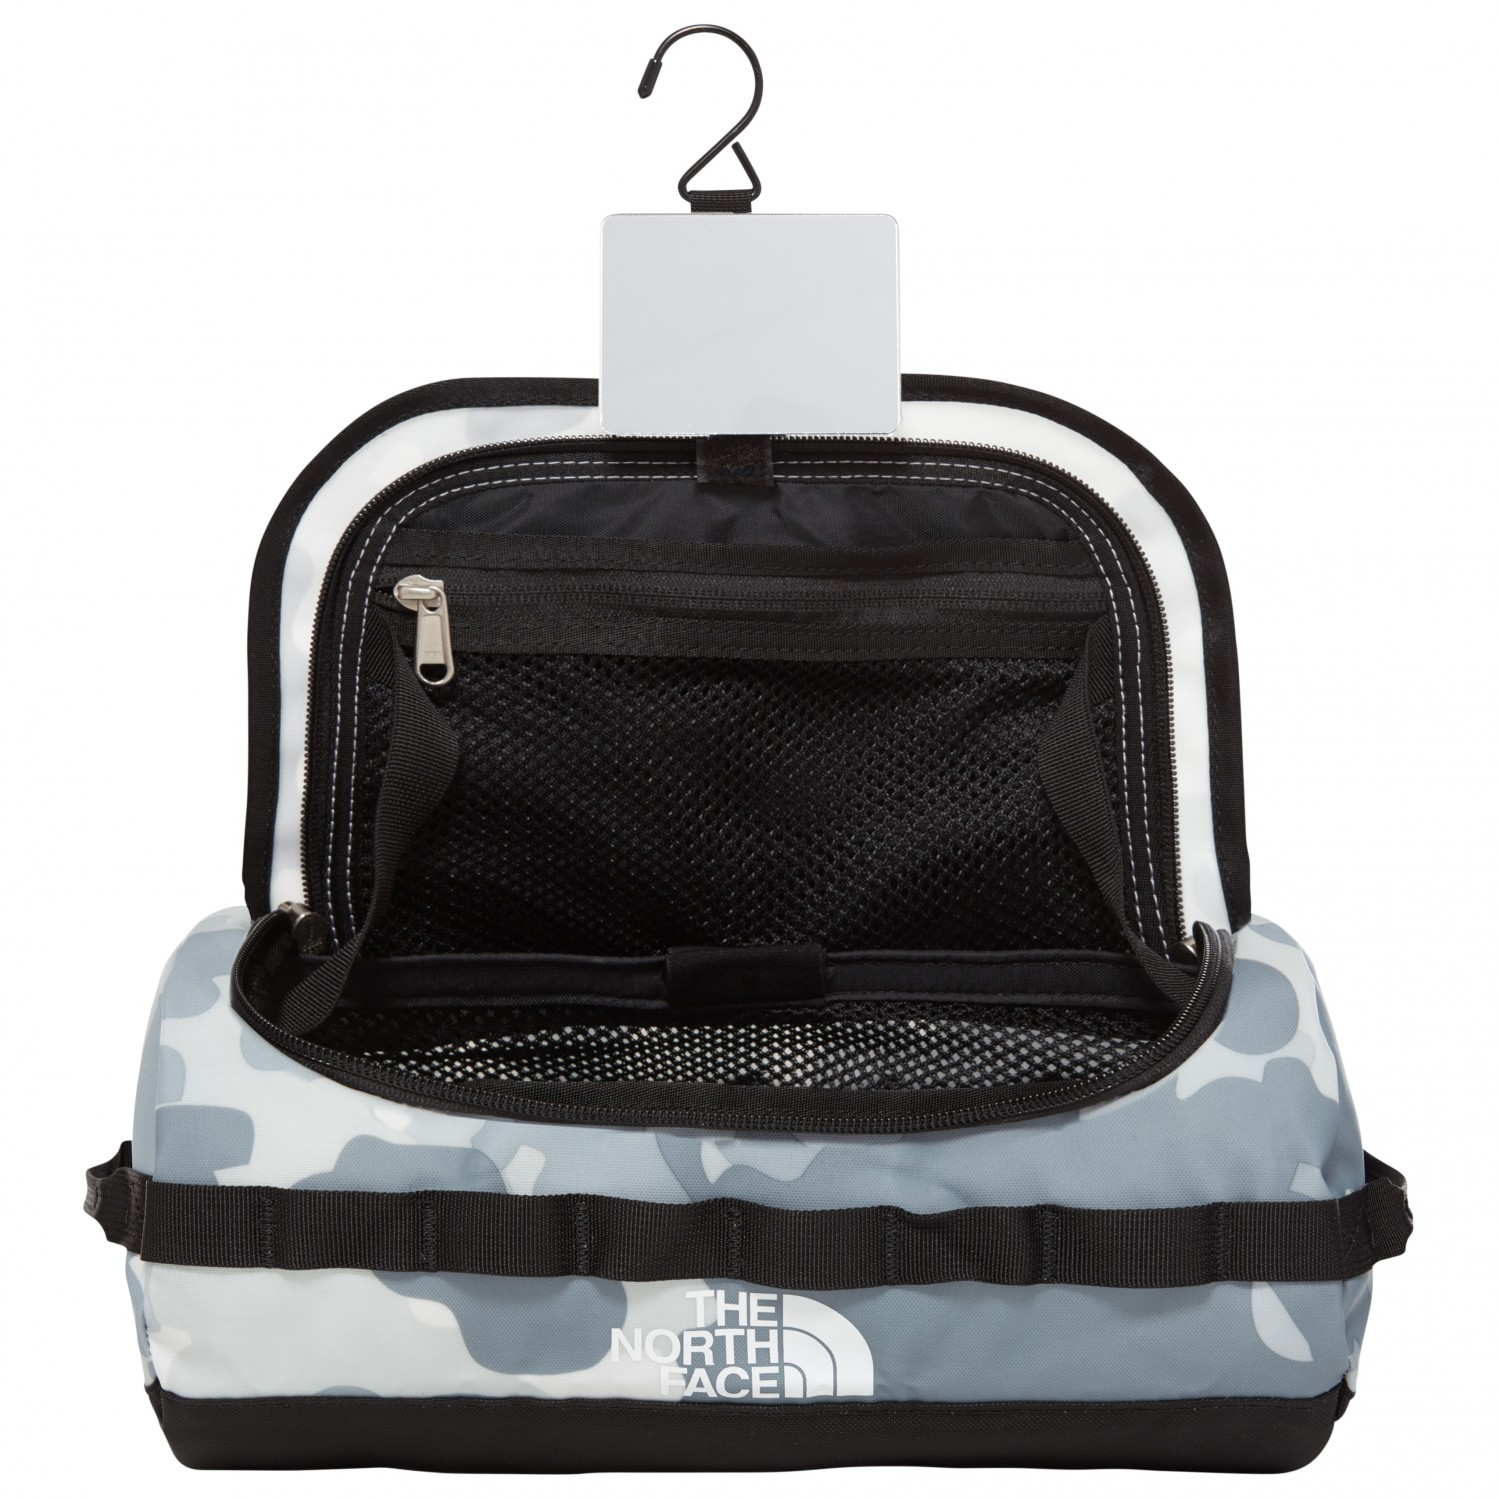 ... The North Face - BC Travel Canister L - Wash bags ... 952d711d56c8